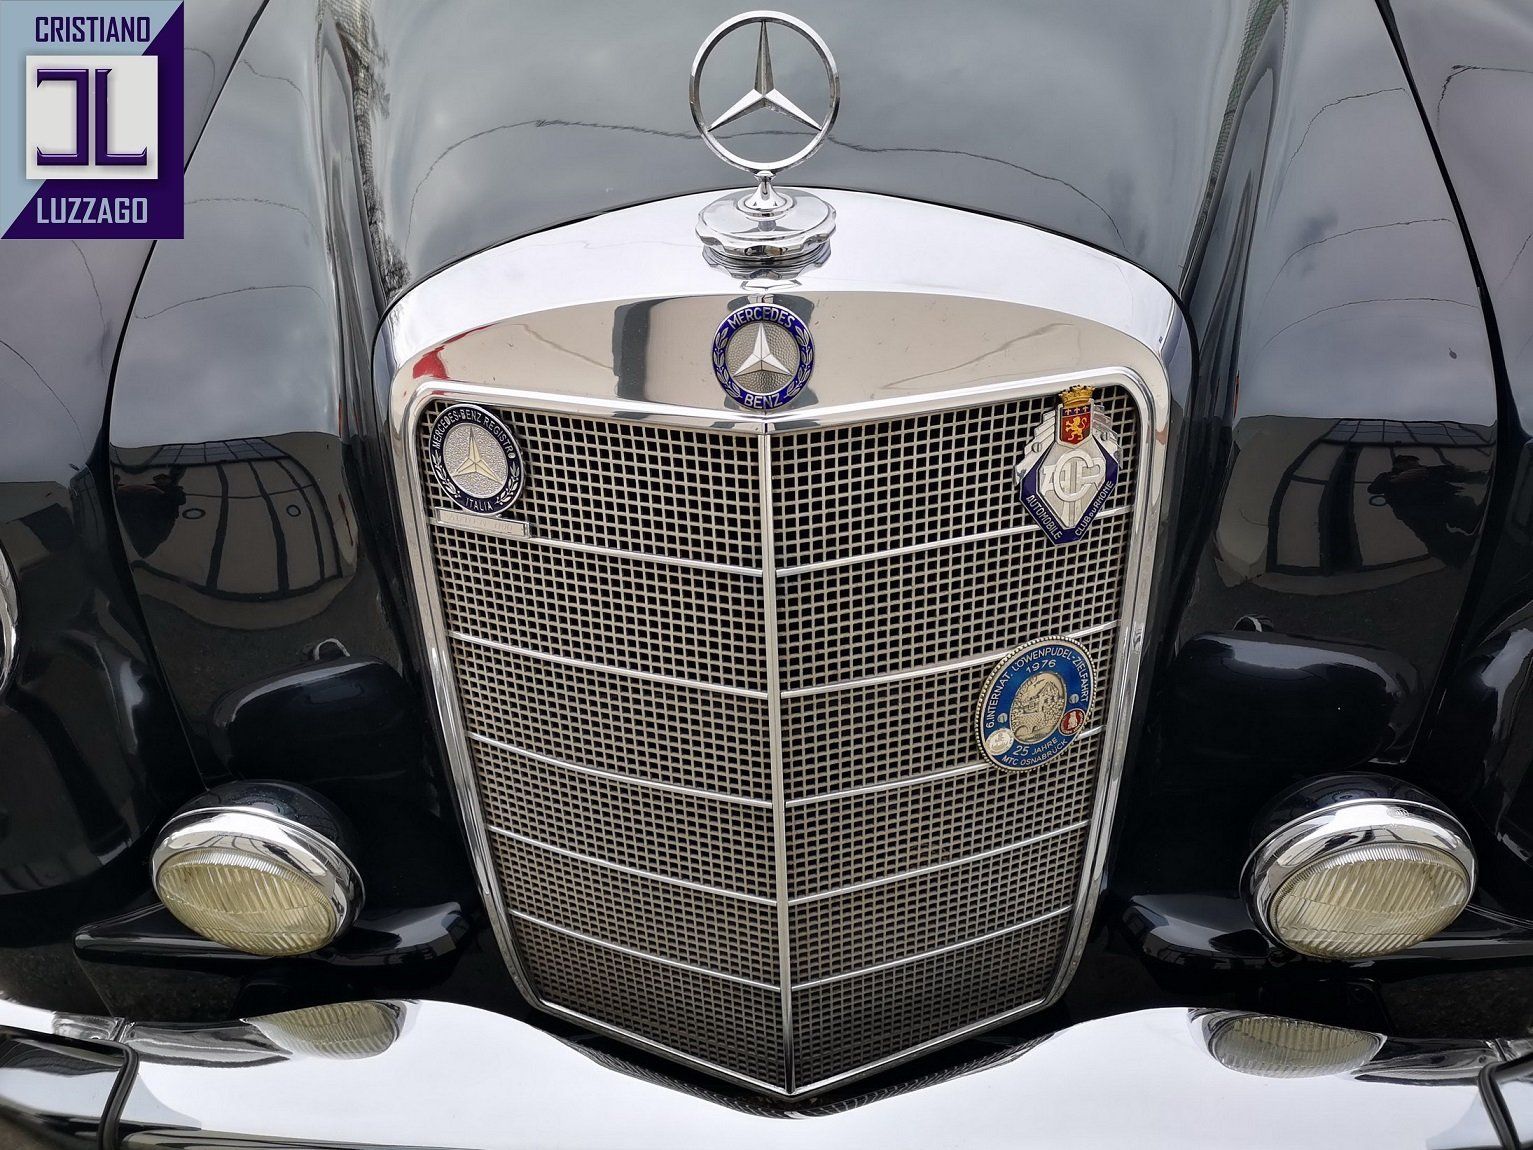 1959 MERCEDES BENZ 220 SE COUPE W128 PONTON,85,539 GENUINE M For Sale (picture 4 of 6)